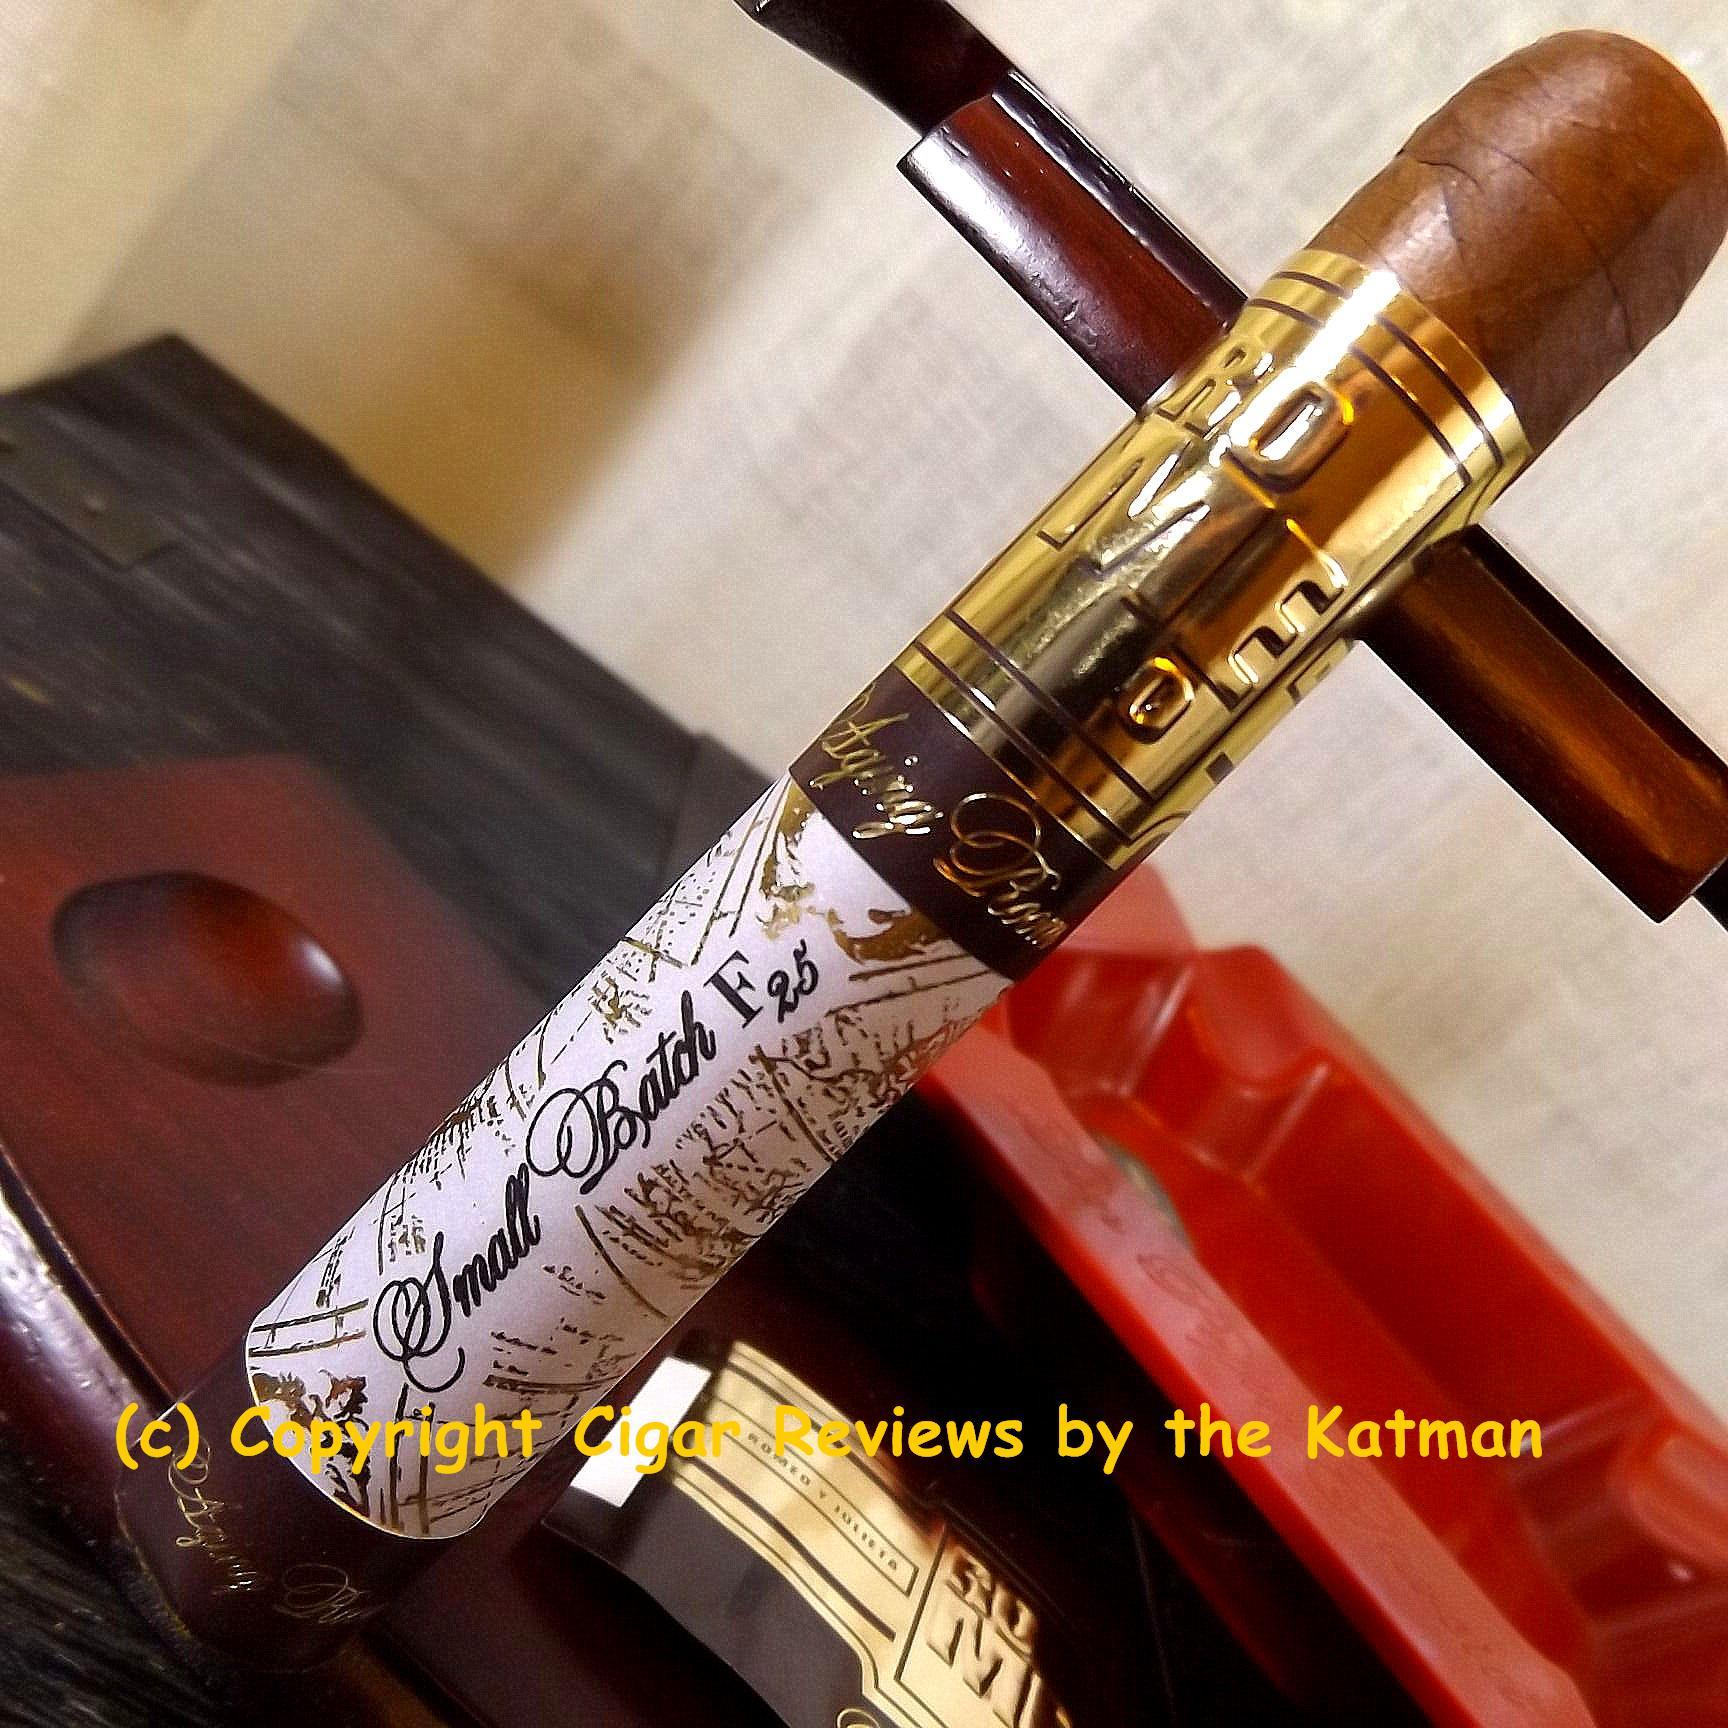 romeo by romeo y julieta review